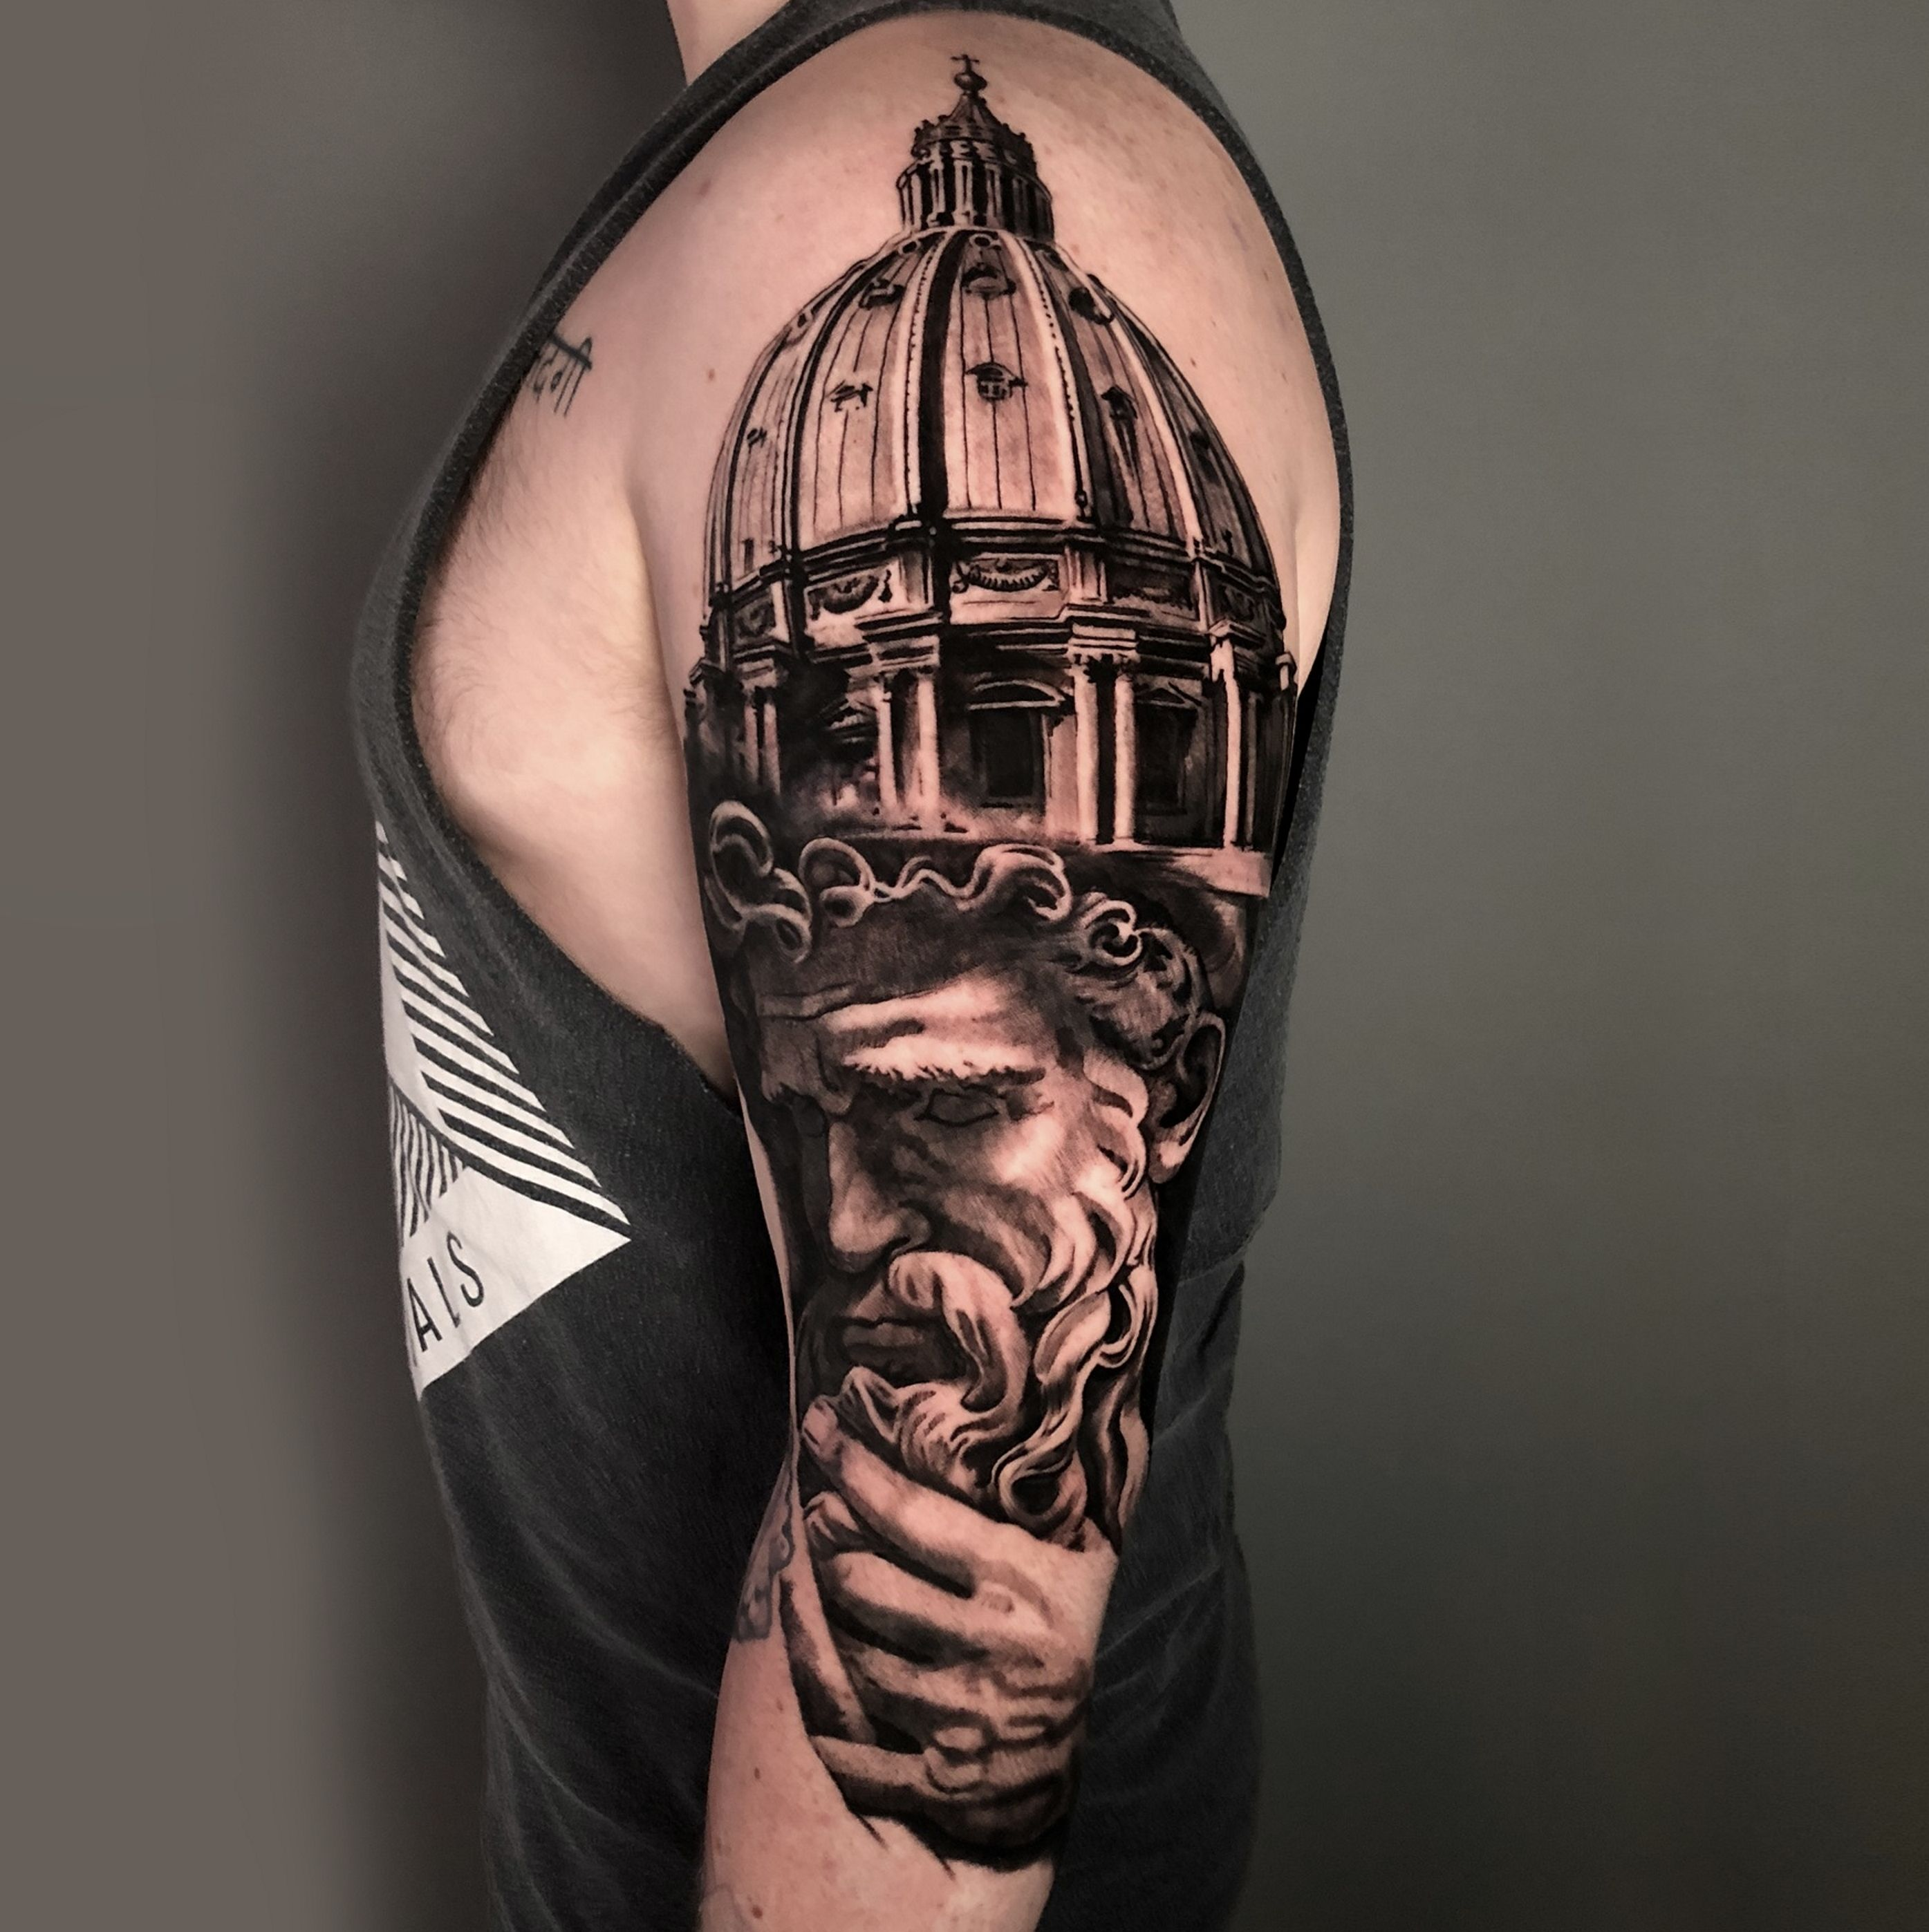 Black and grey realistic sleeve tattoo of saint peter